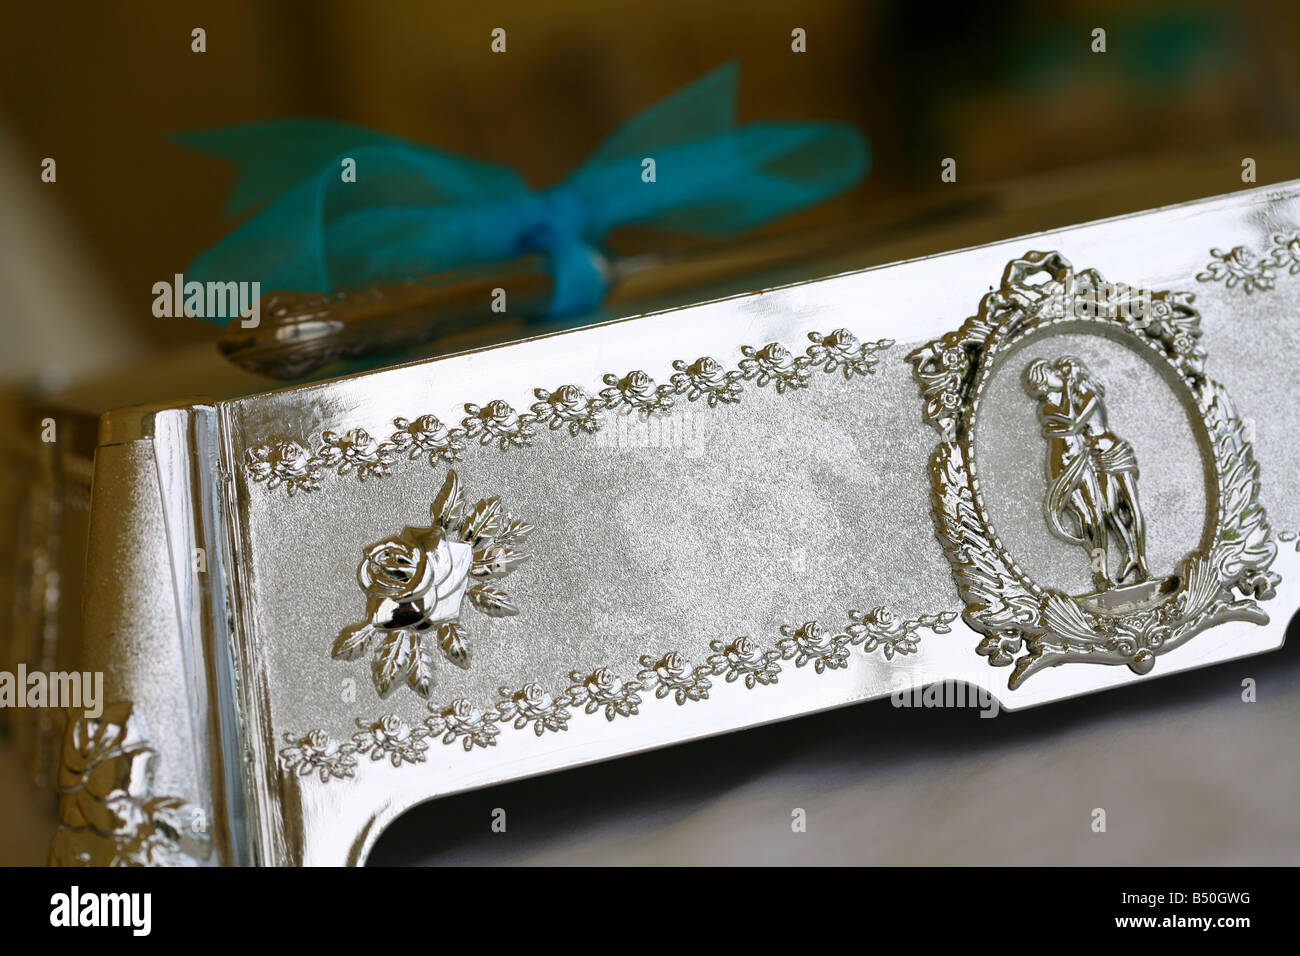 Silver wedding cake stand   knife blue bow Stock Photo  20296908   Alamy Silver wedding cake stand   knife blue bow